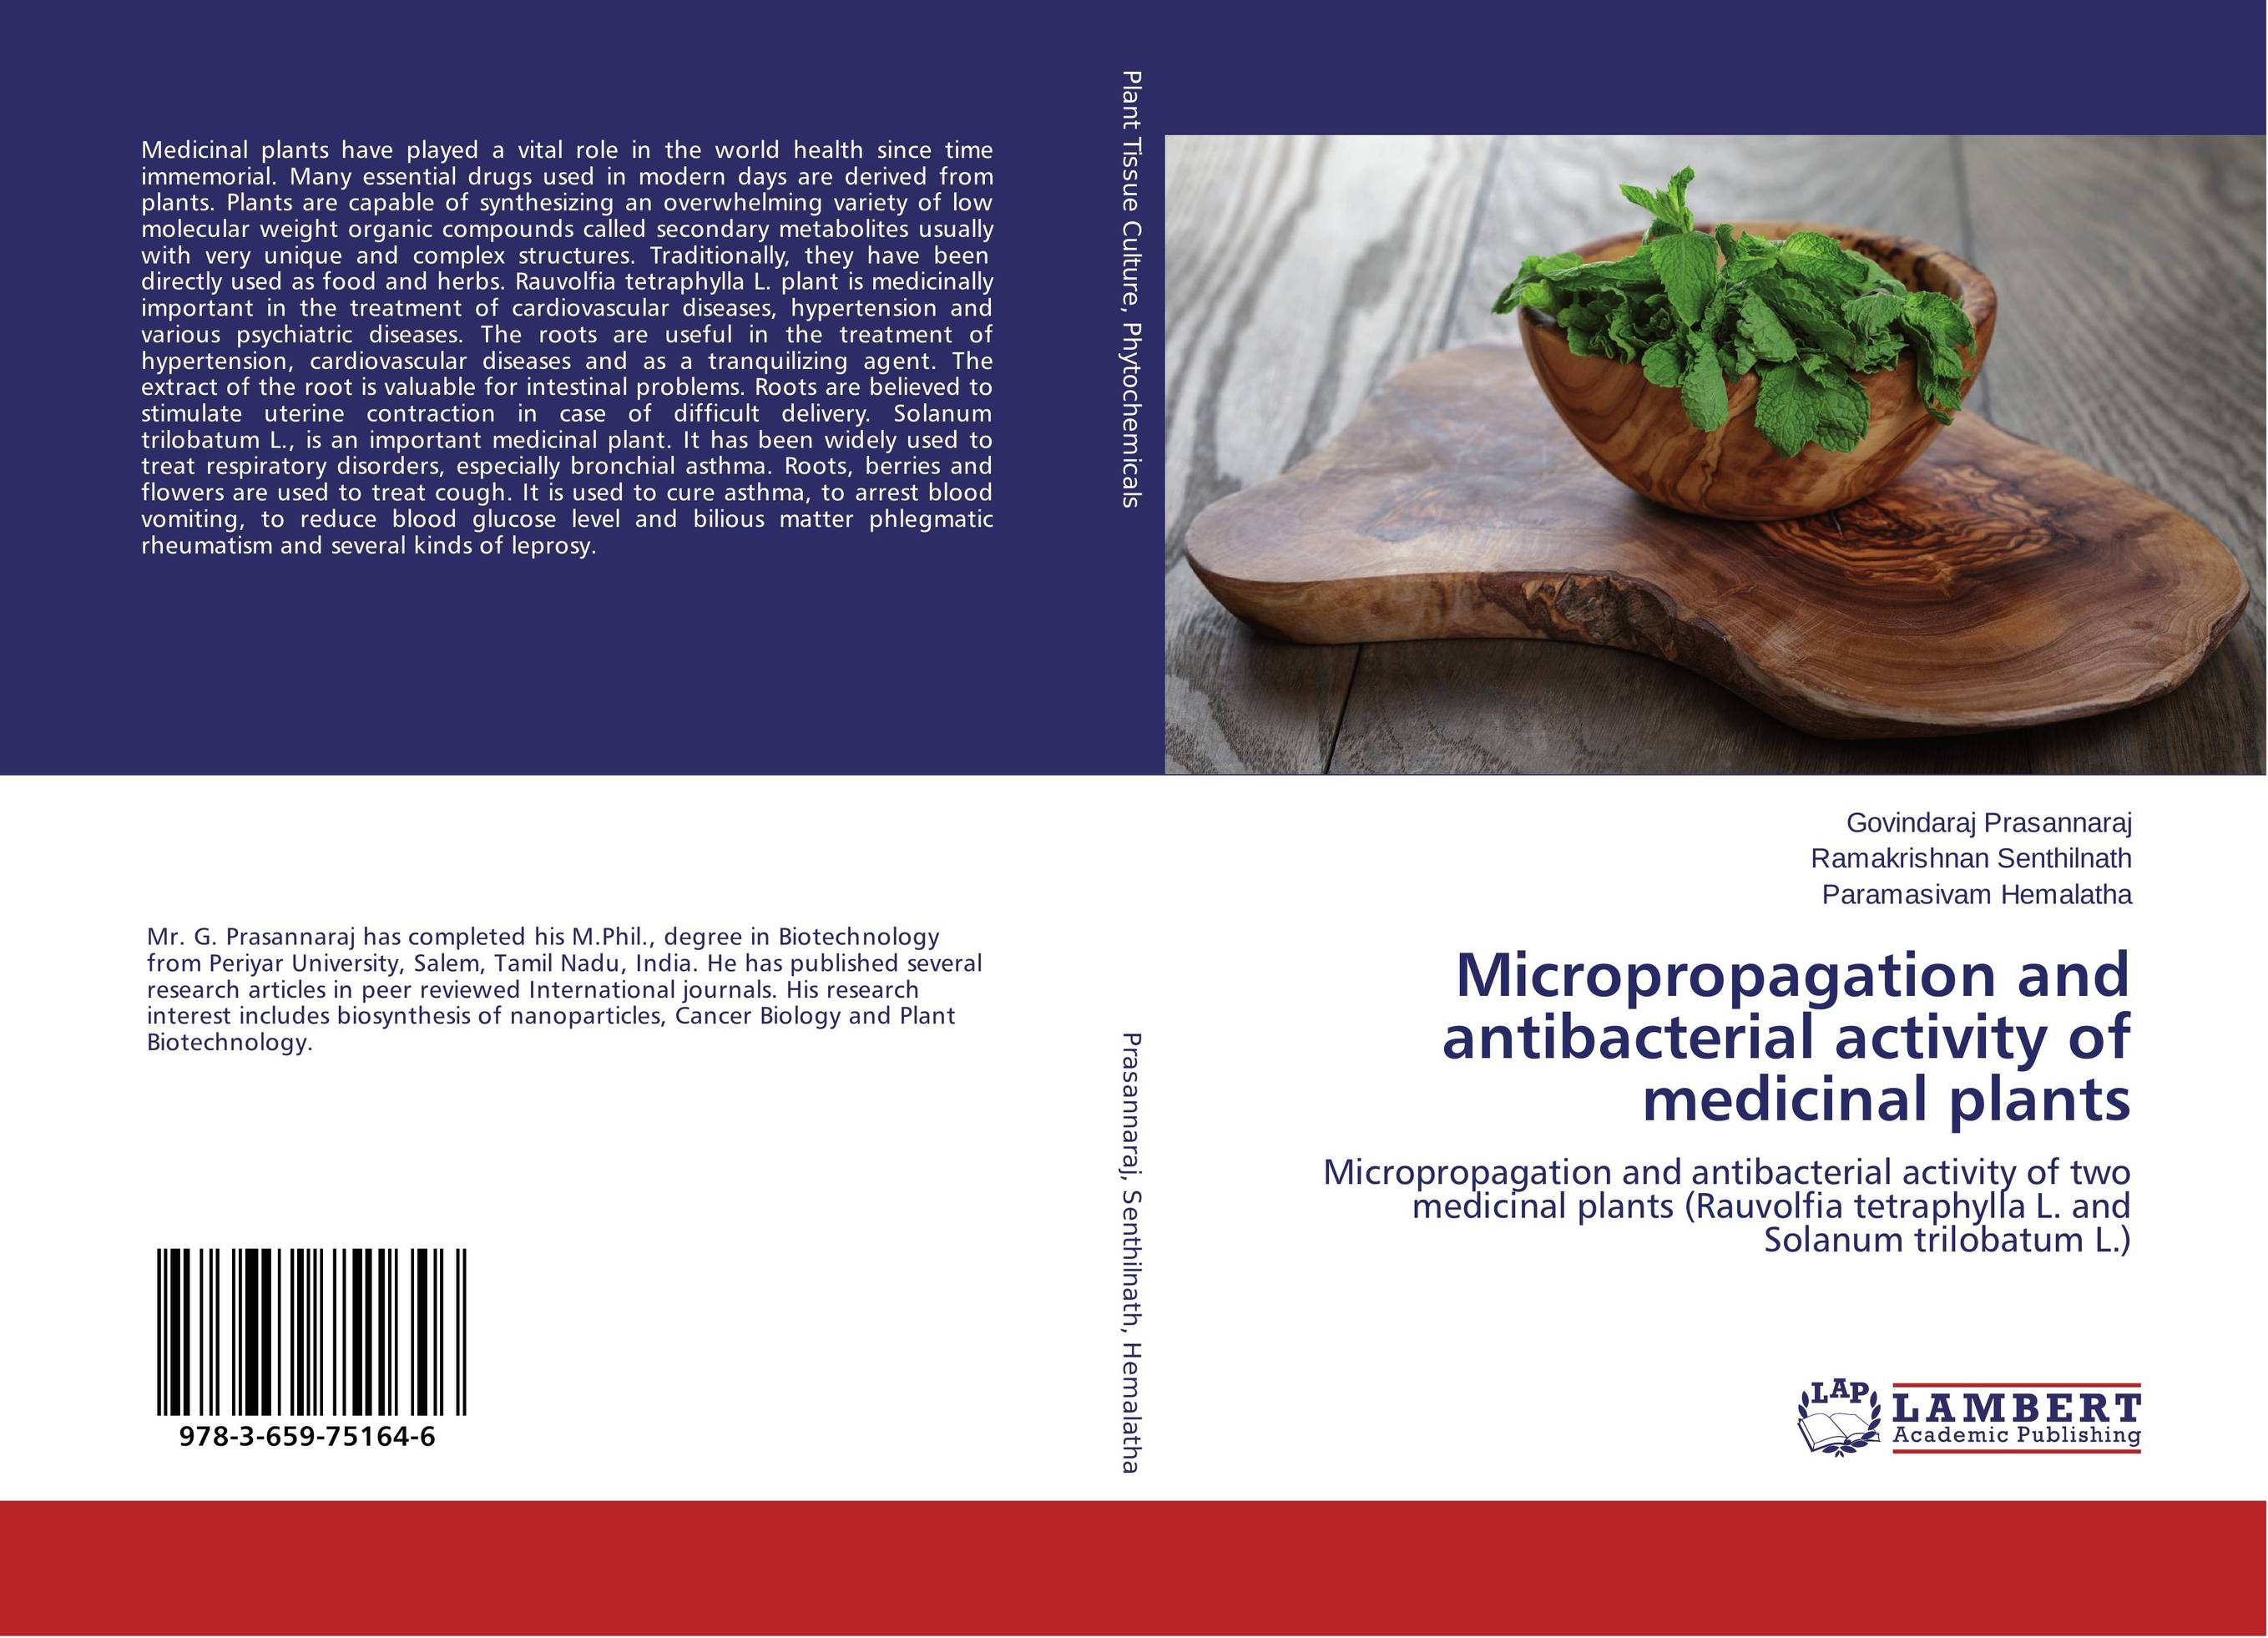 Micropropagation and antibacterial activity of medicinal plants medicinal plants to treat obesity